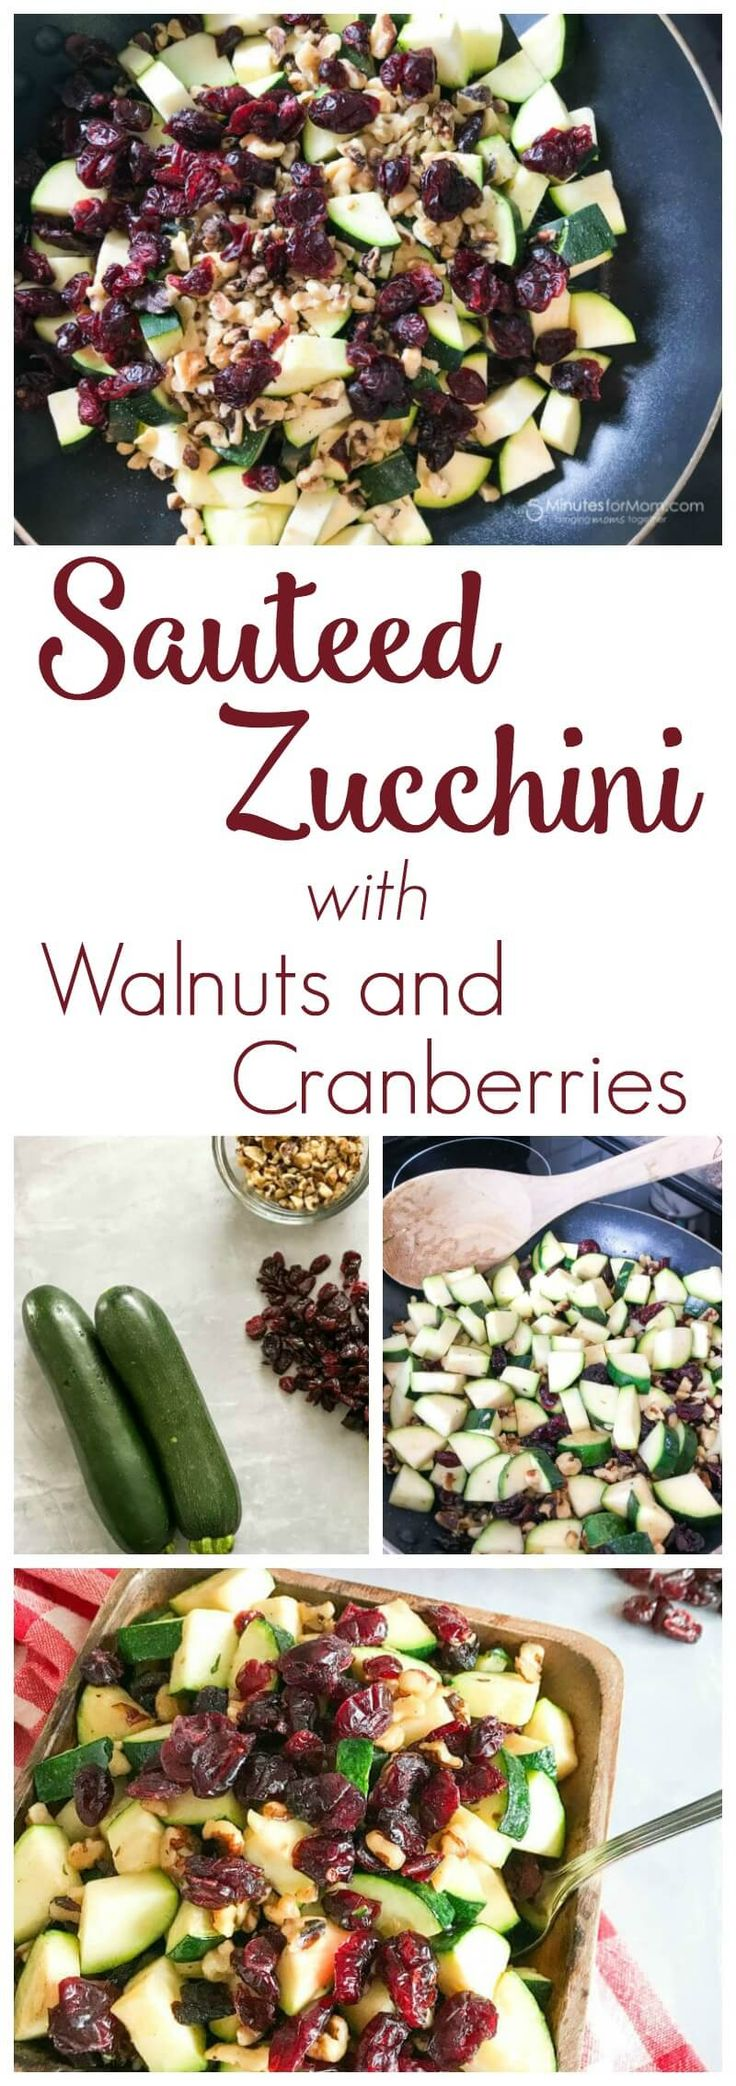 Sauteed Zucchini with Walnuts and Cranberries Recipe - Easy Side Dish For Dinner Parties - Sponsored #SideDish #Cranberries